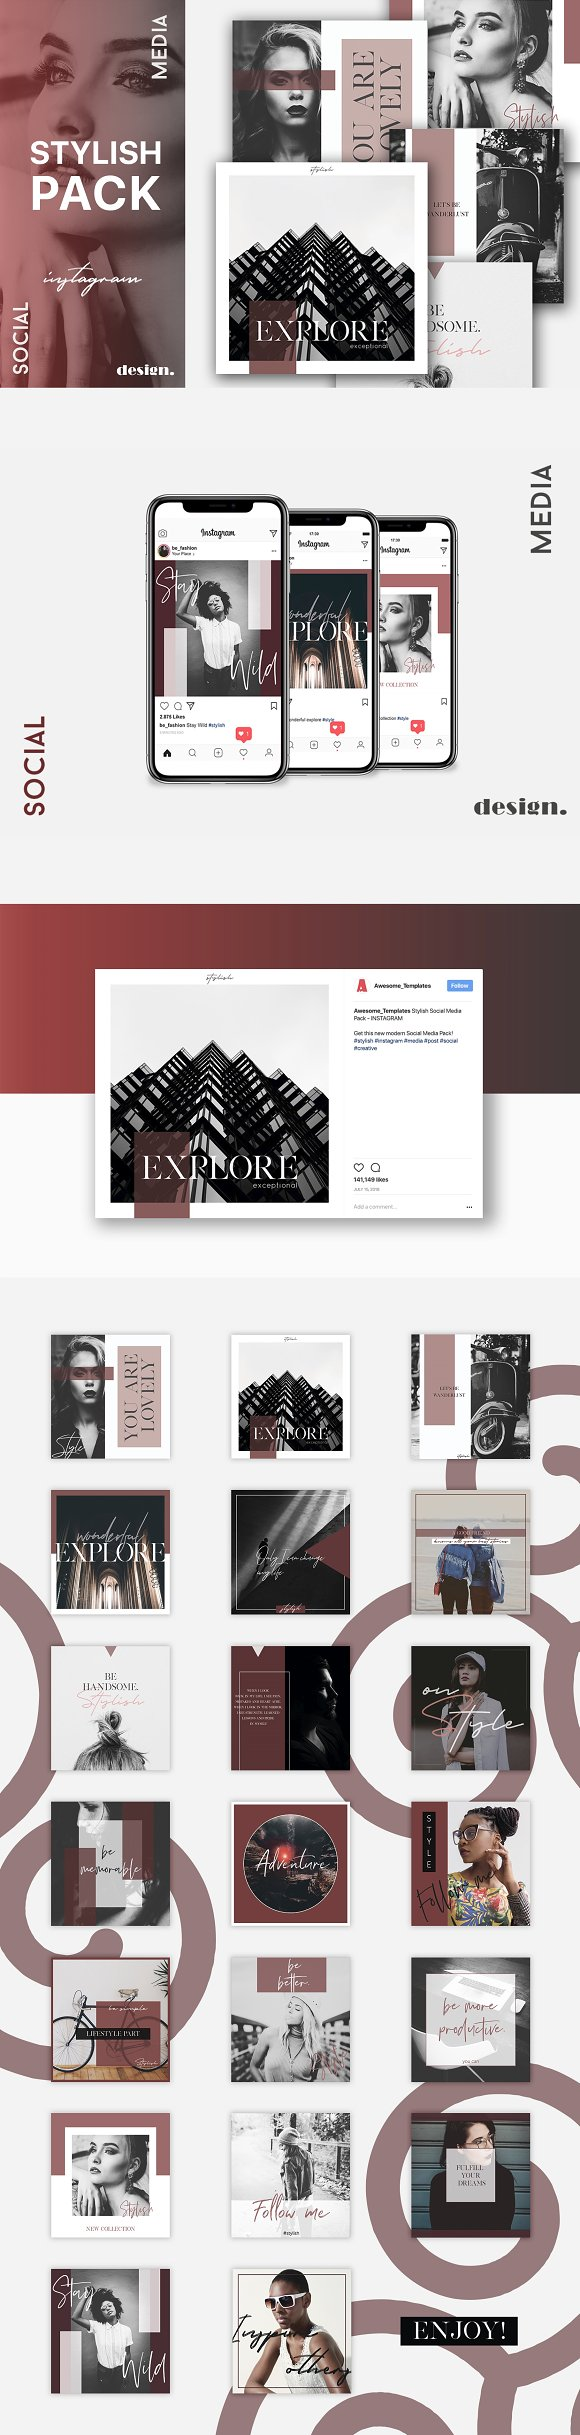 Stylish Social Media Pack  in Instagram Templates - product preview 8